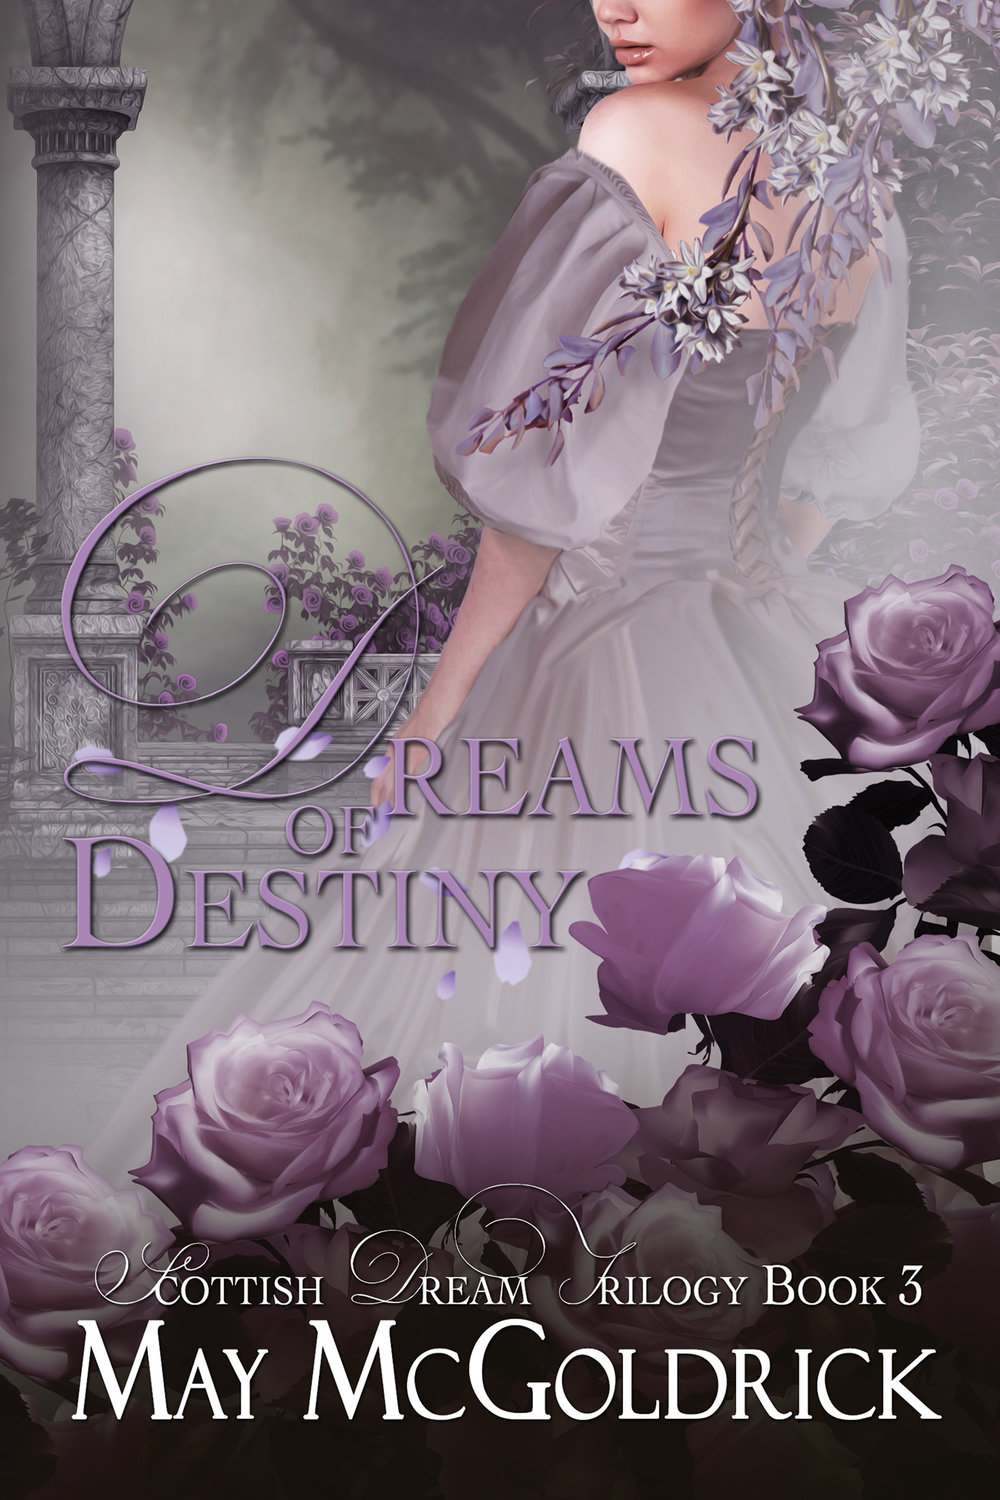 dreams-of-destiny-e-reader-copy.jpg